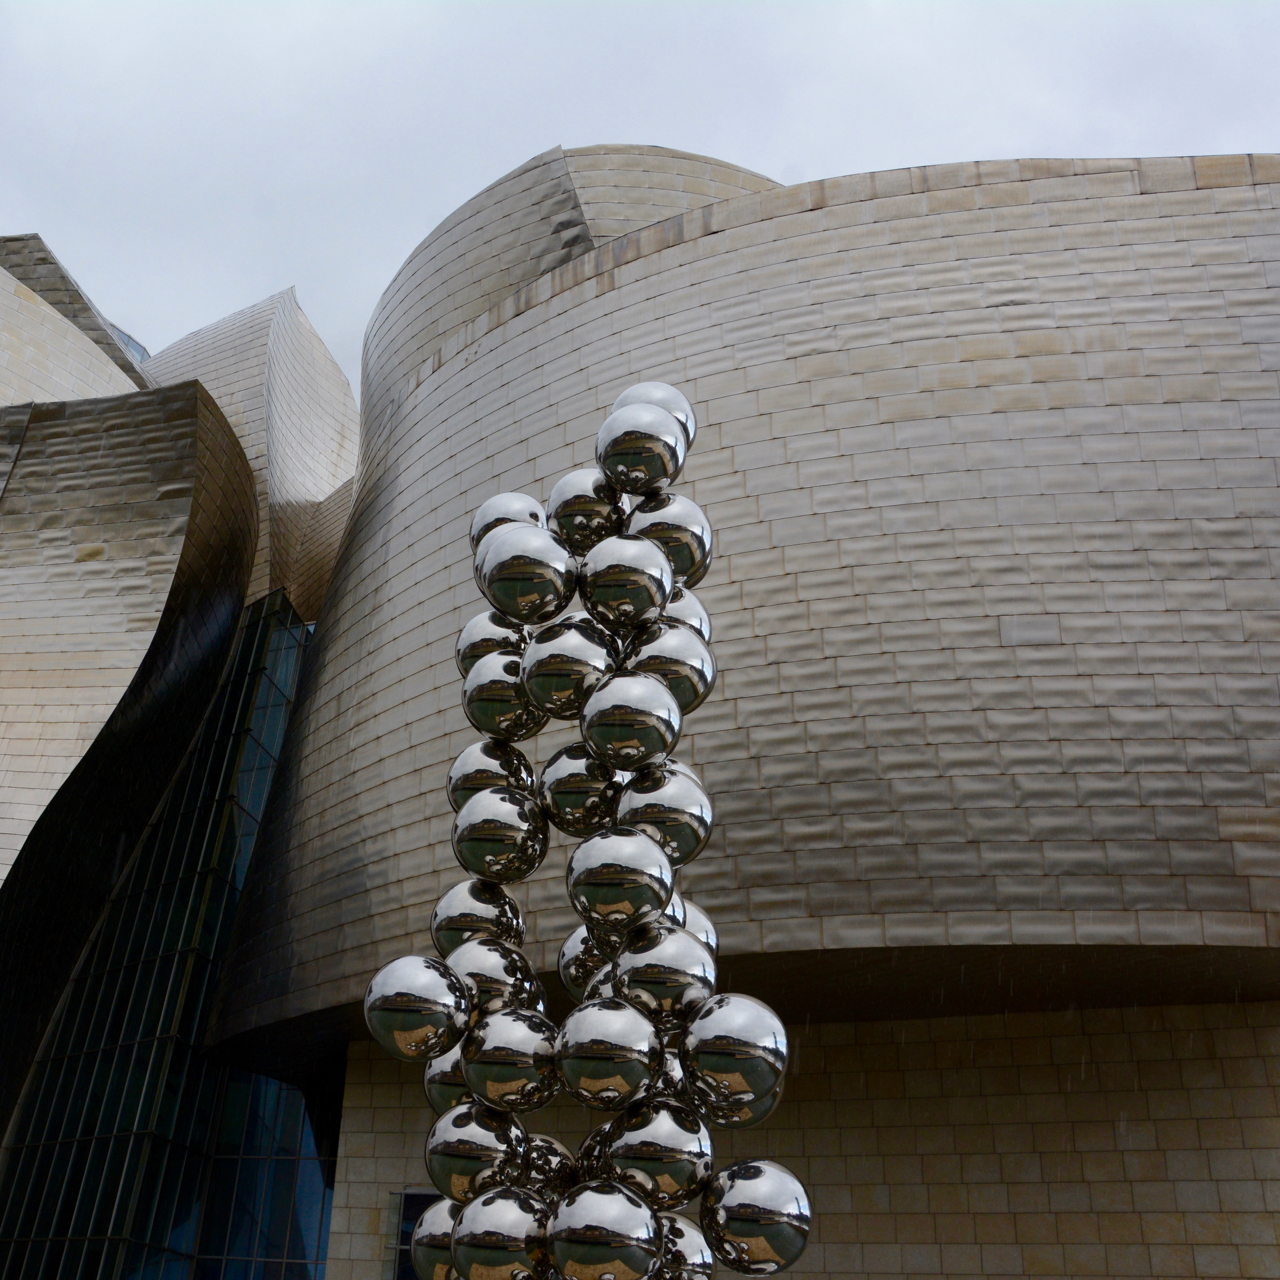 anish kapoor sculpture guggenheim bilbao spain